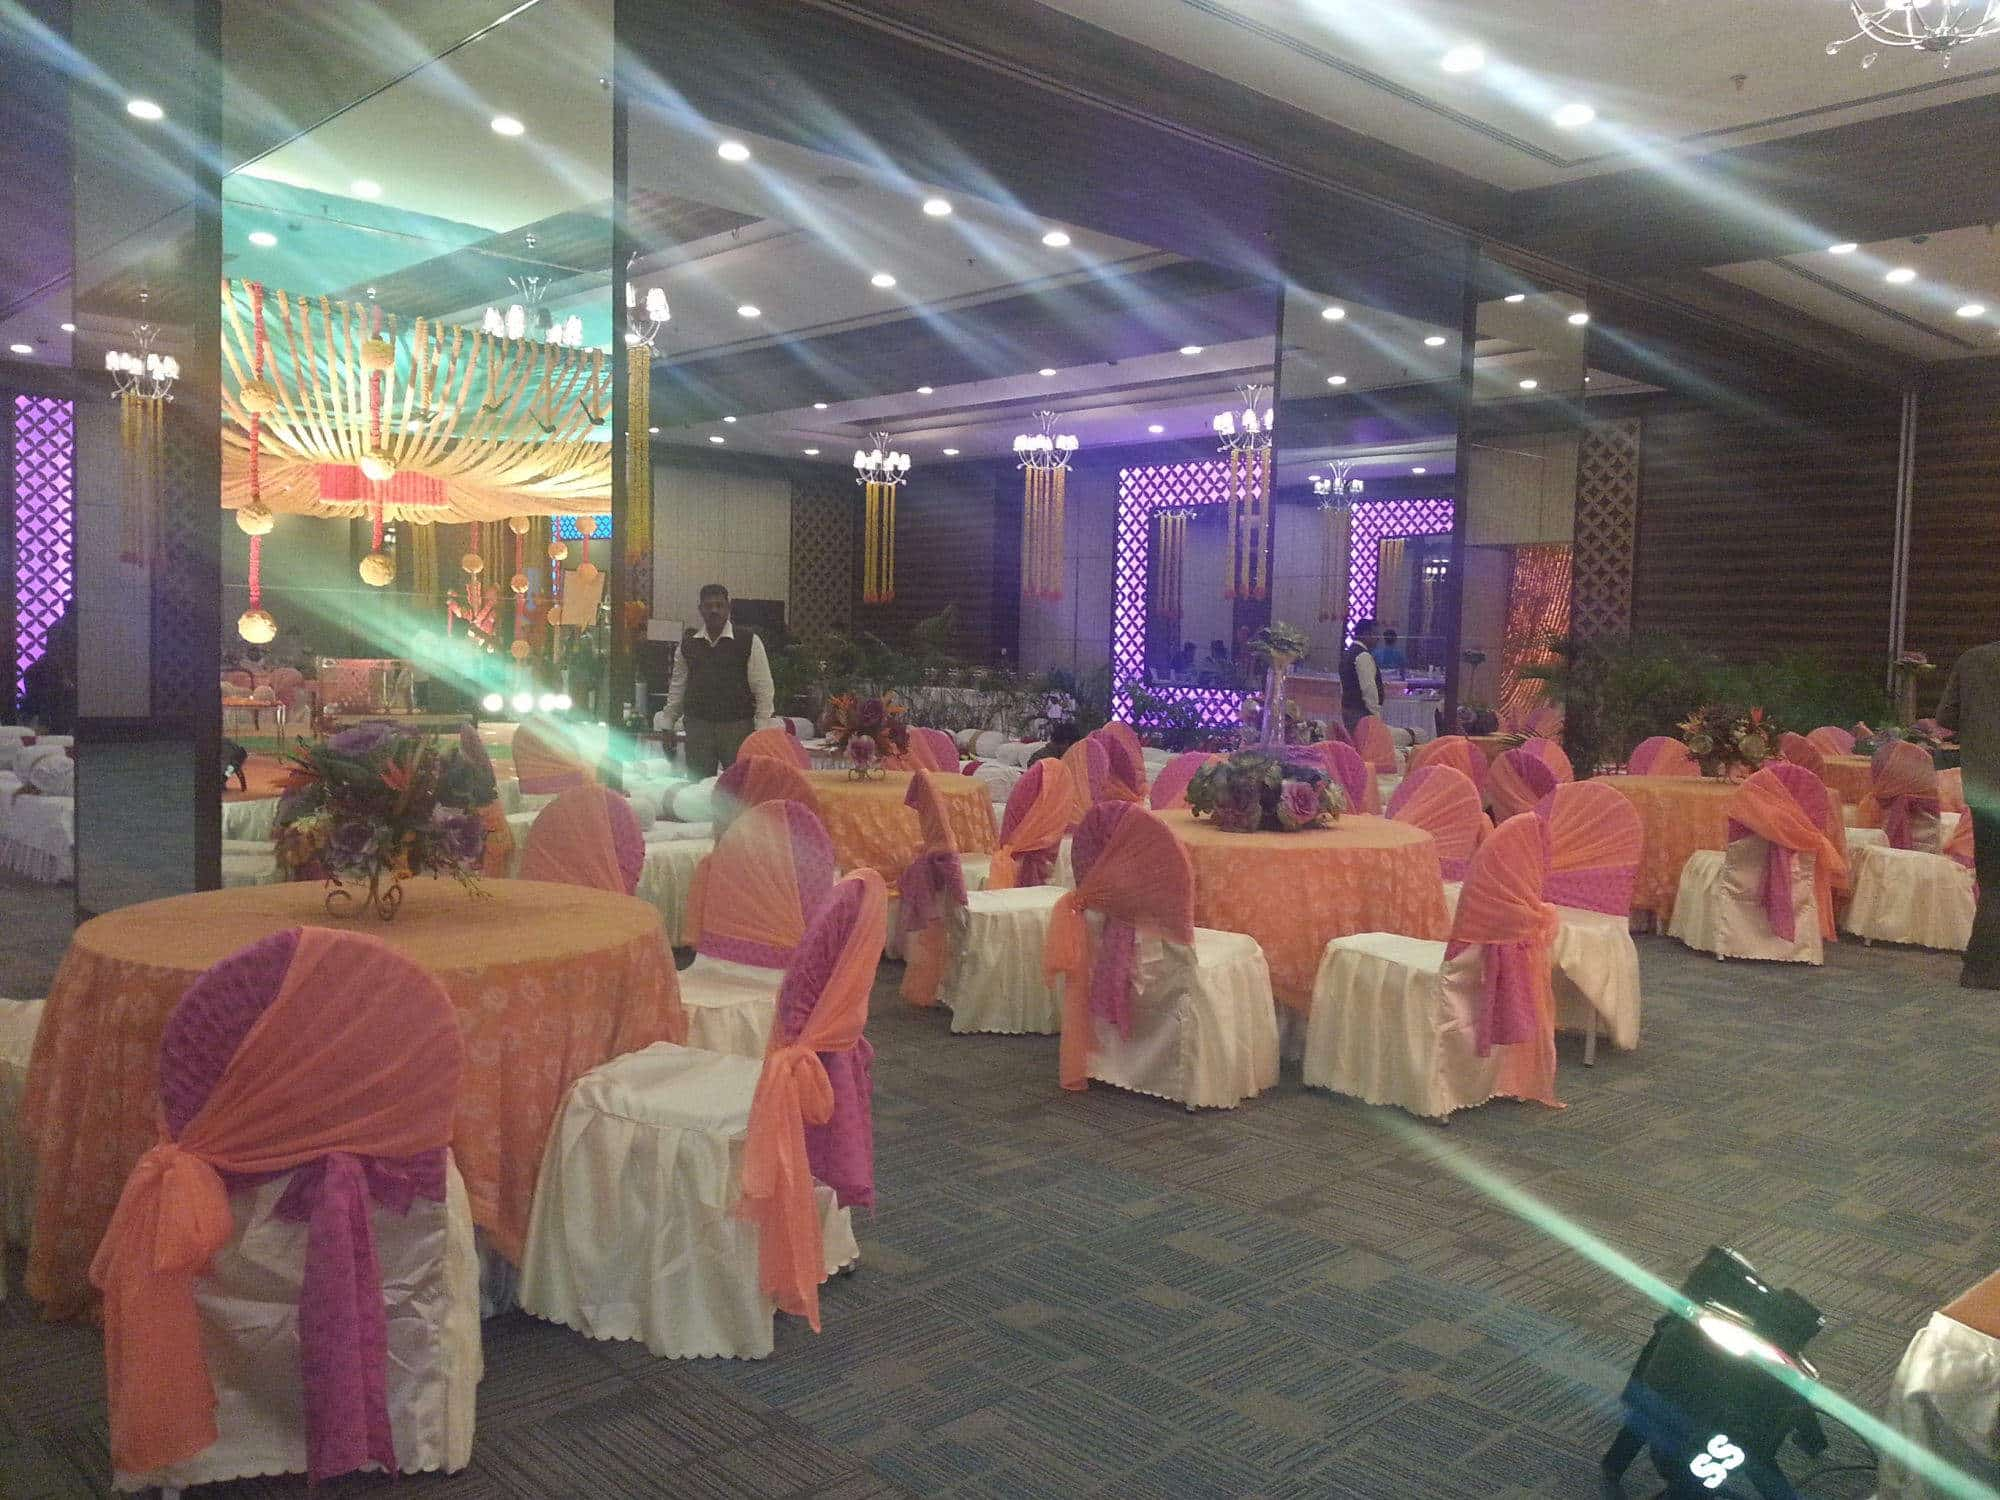 ... Theme party - Exotic Tent House Photos Puppalaguda Hyderabad - Tents On Hire ... & Exotic Tent House Photos Puppalaguda Hyderabad- Pictures u0026 Images ...